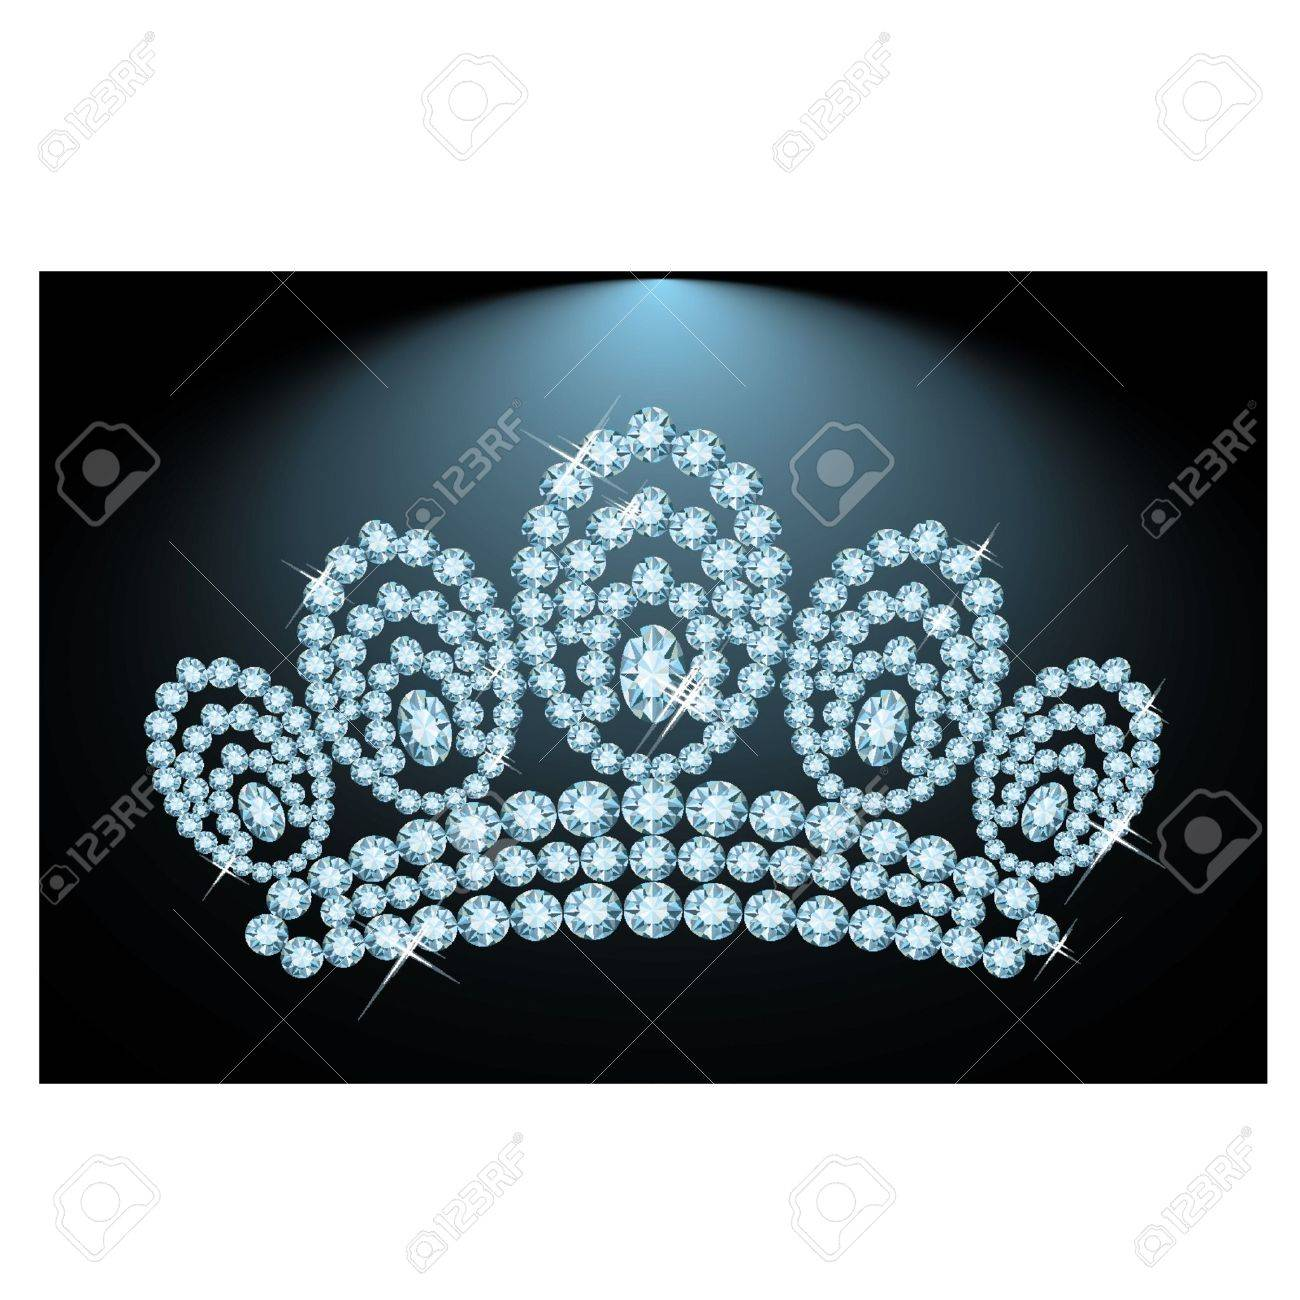 Diamond triada, vector illustration Stock Vector - 13490829